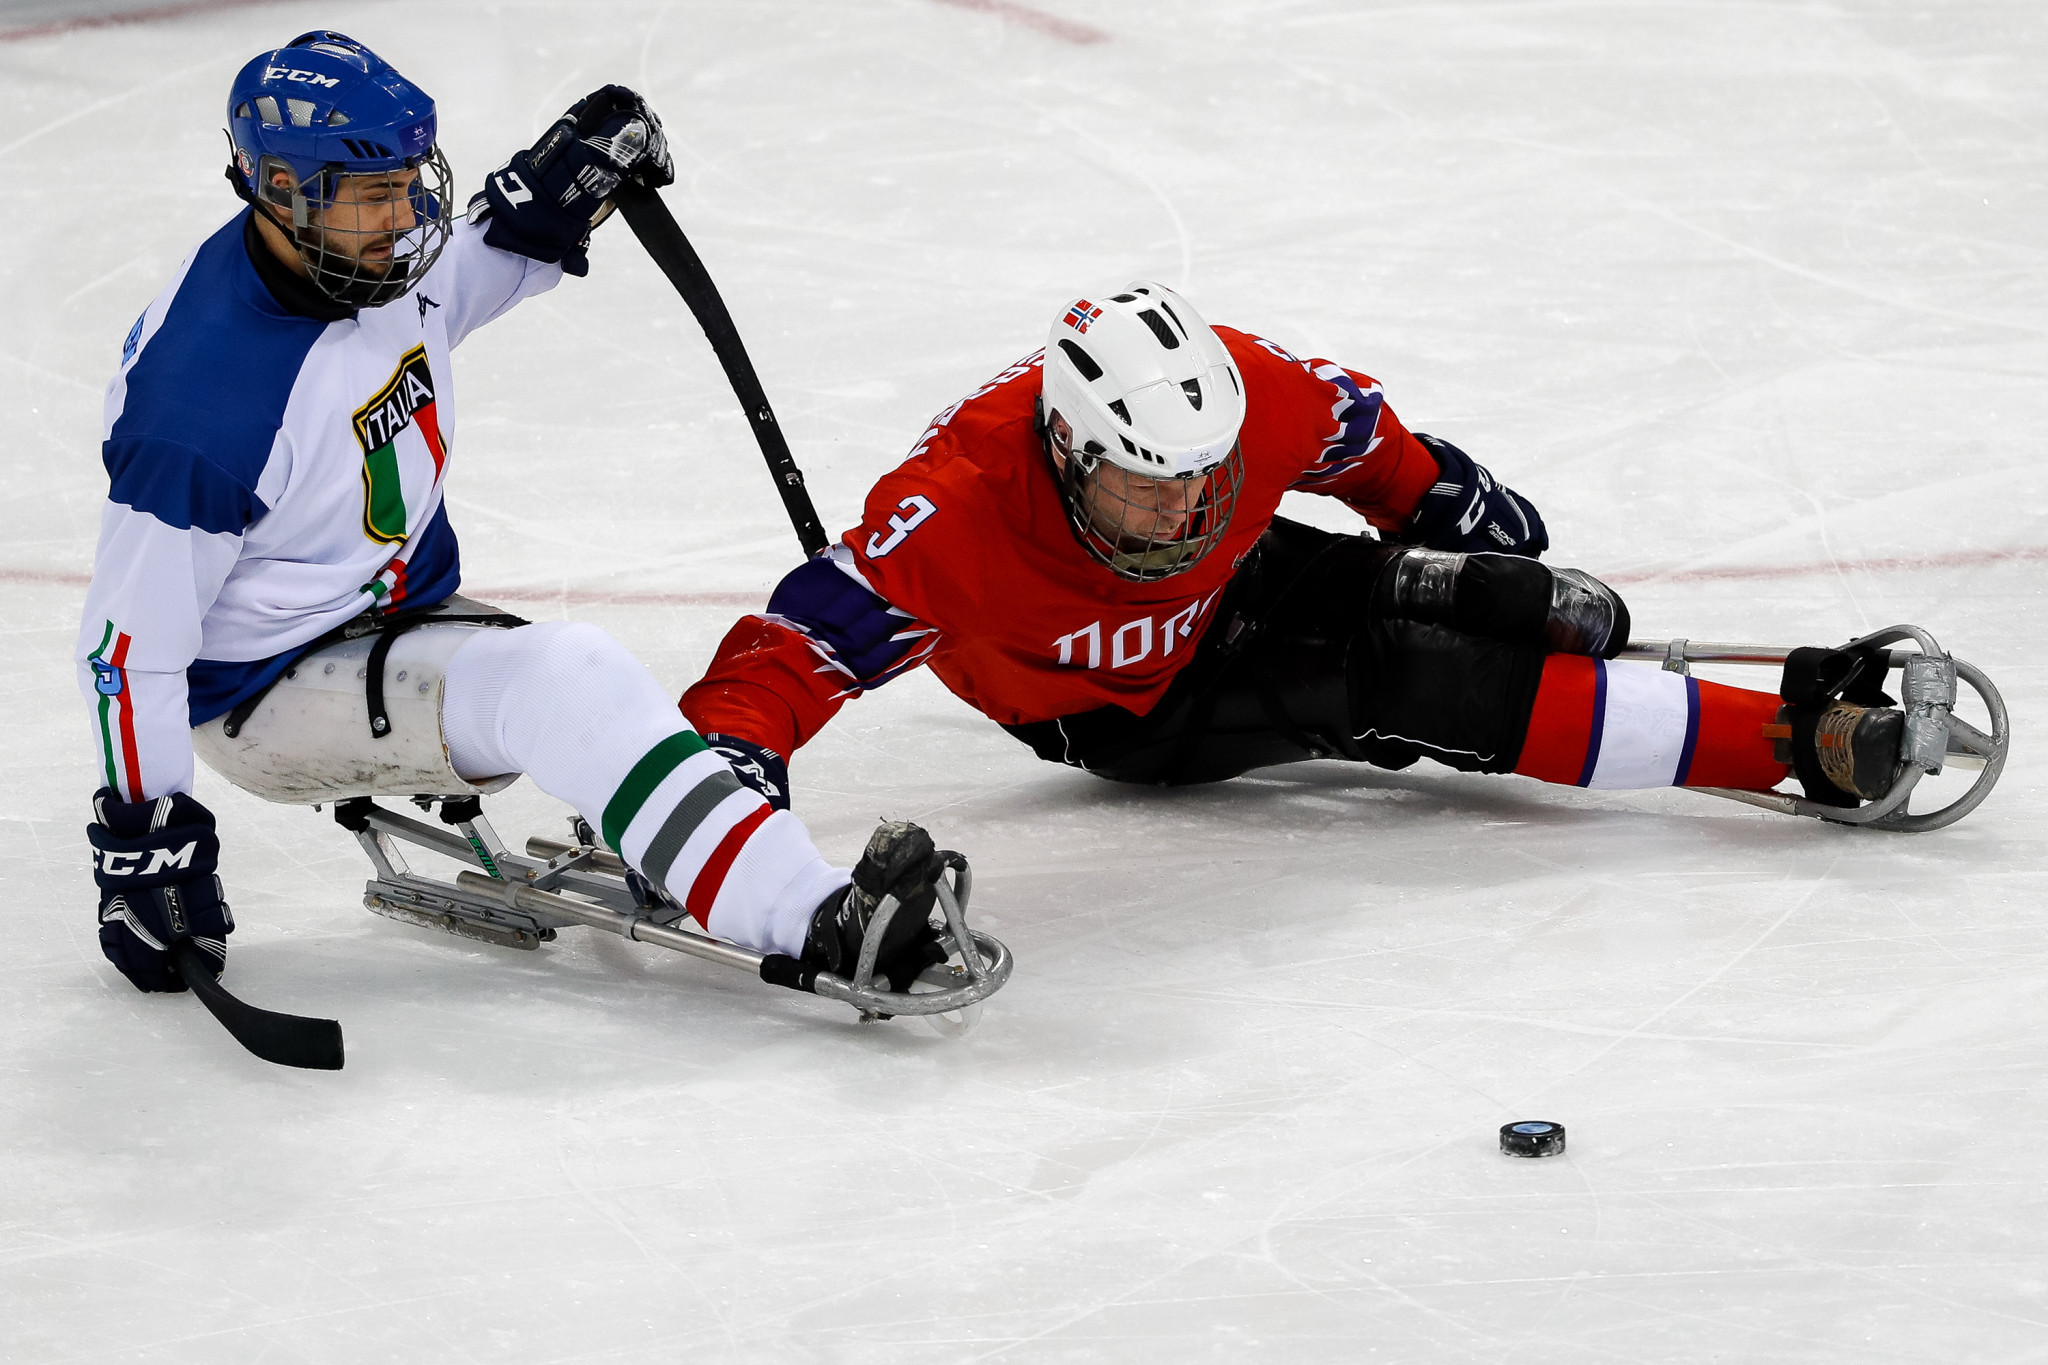 Italian Para ice hockey player given two-year ban for failed test at Pyeongchang 2018 Paralympics